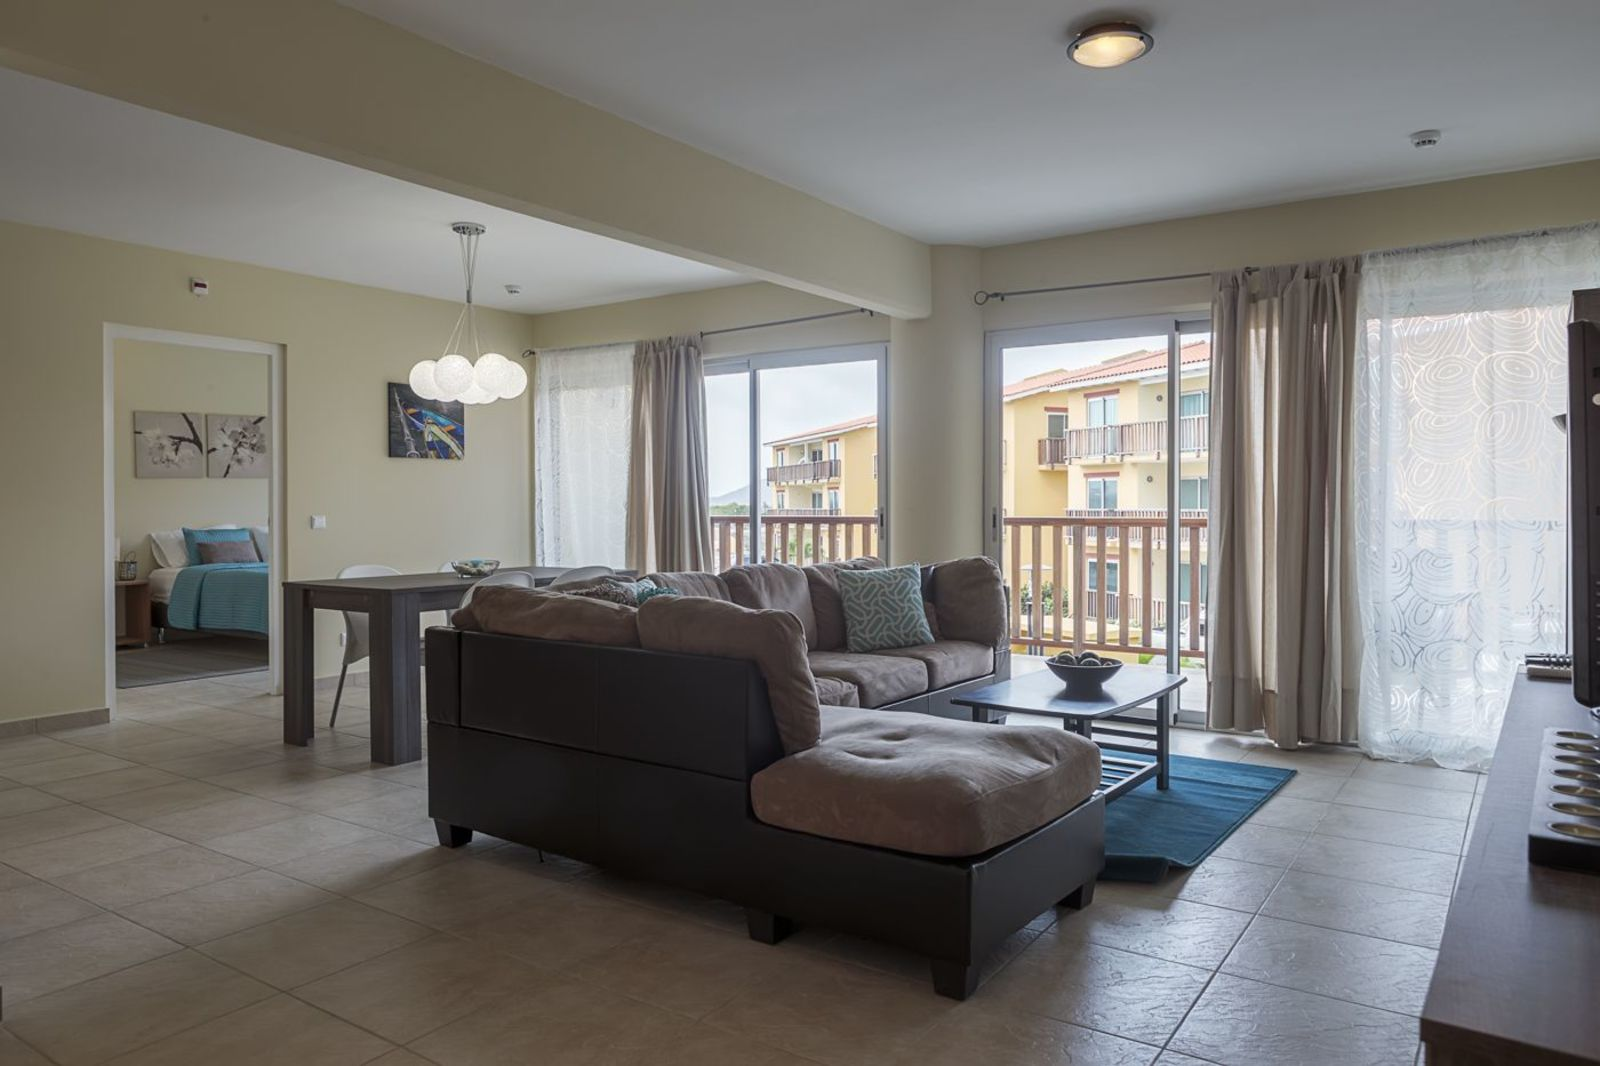 Image of Palapa Beach Condo Apartment 2 bedrooms